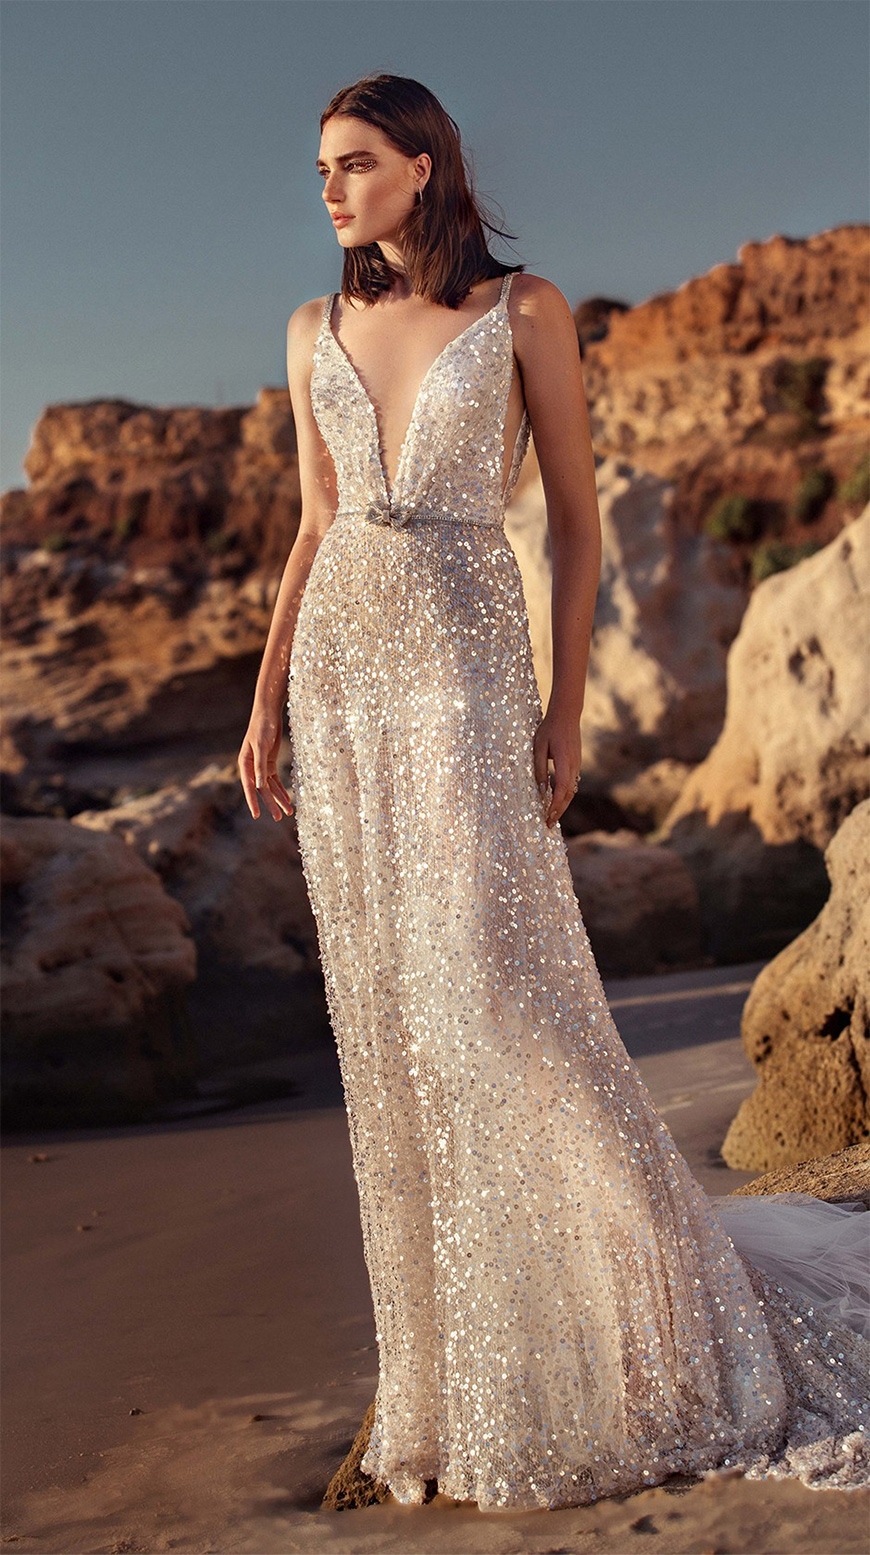 2020 Wedding Dresses Trends - All that glitters | CHWV